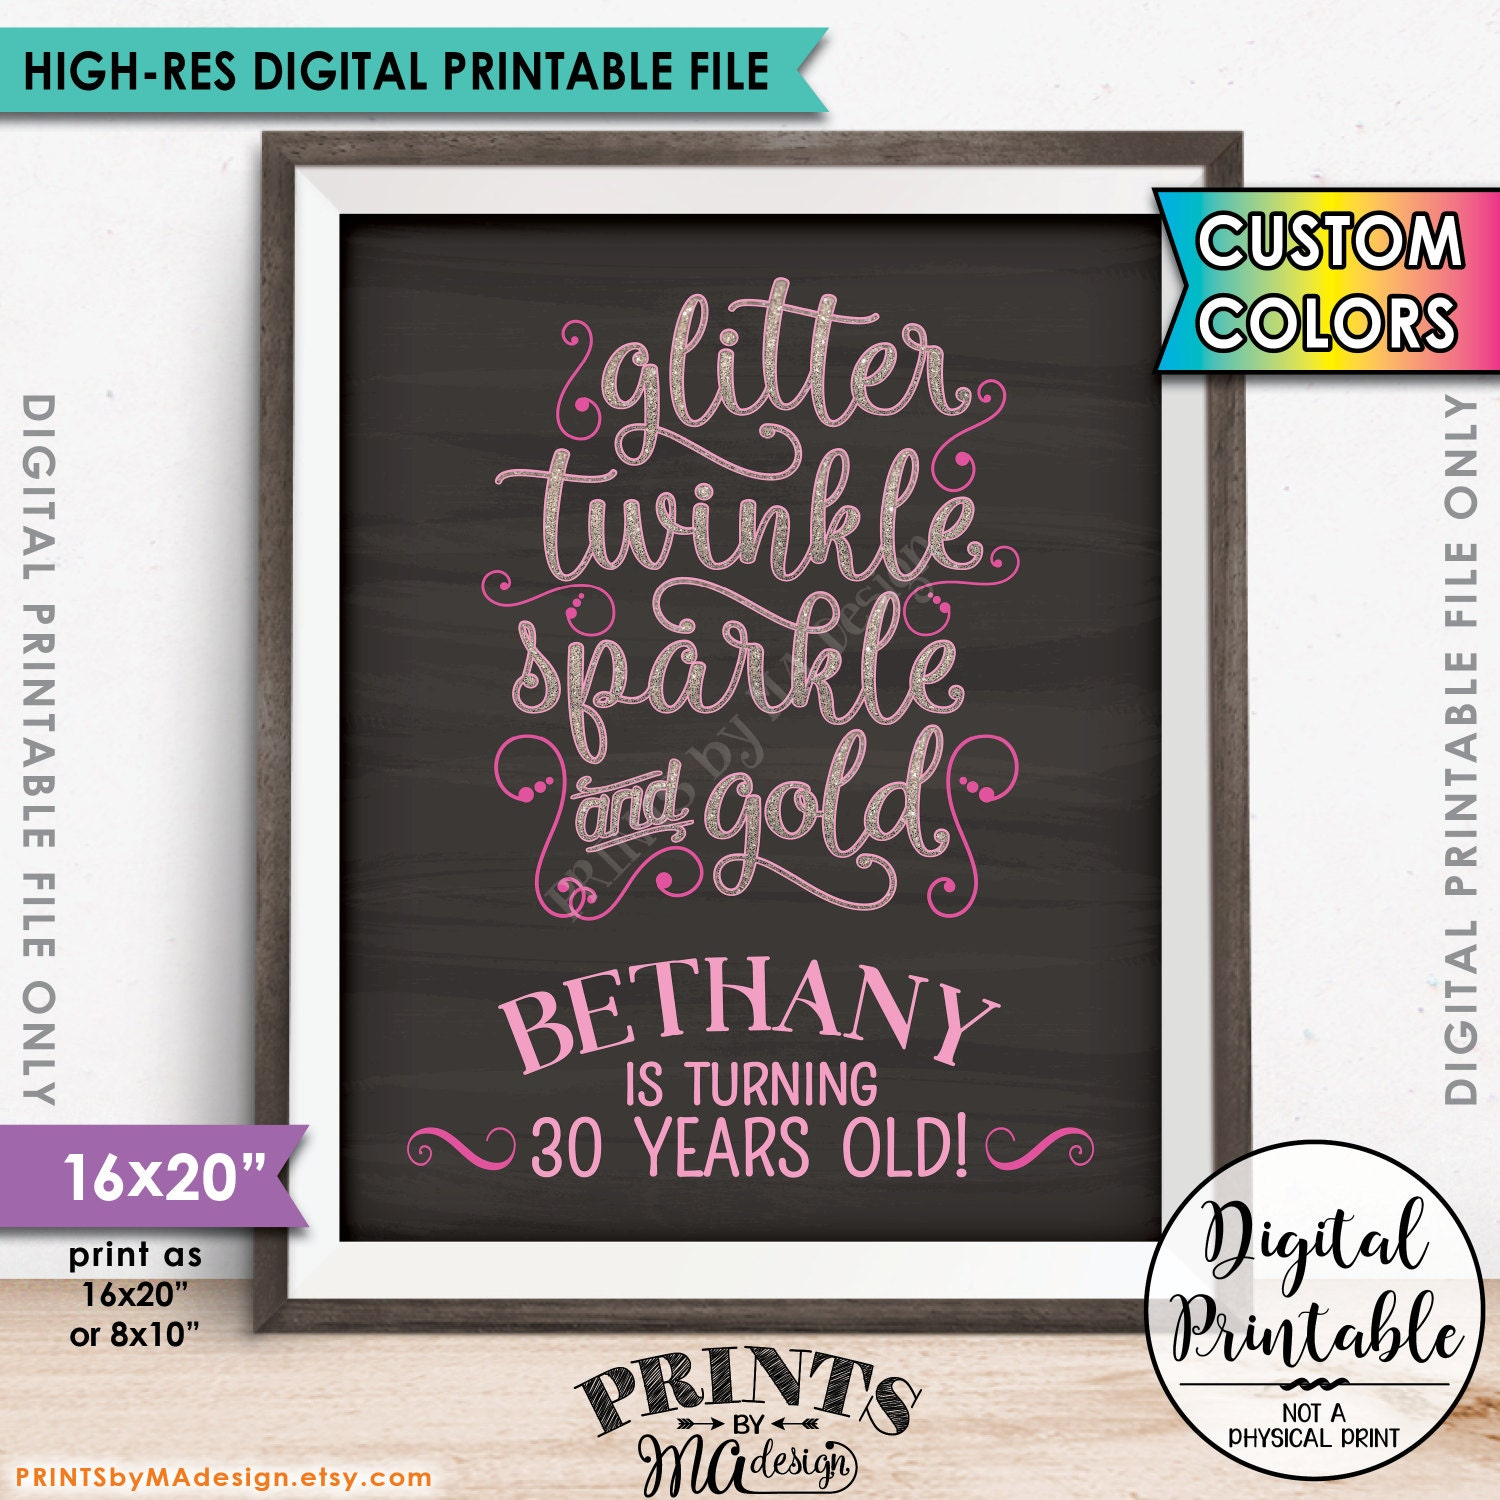 Design a 16x20 poster - Birthday Sign Glitter Twinkle Sparkle And Gold B Day Decor Glitter Birthday Poster 8x10 16x20 Chalkboard Style Digital Printable File